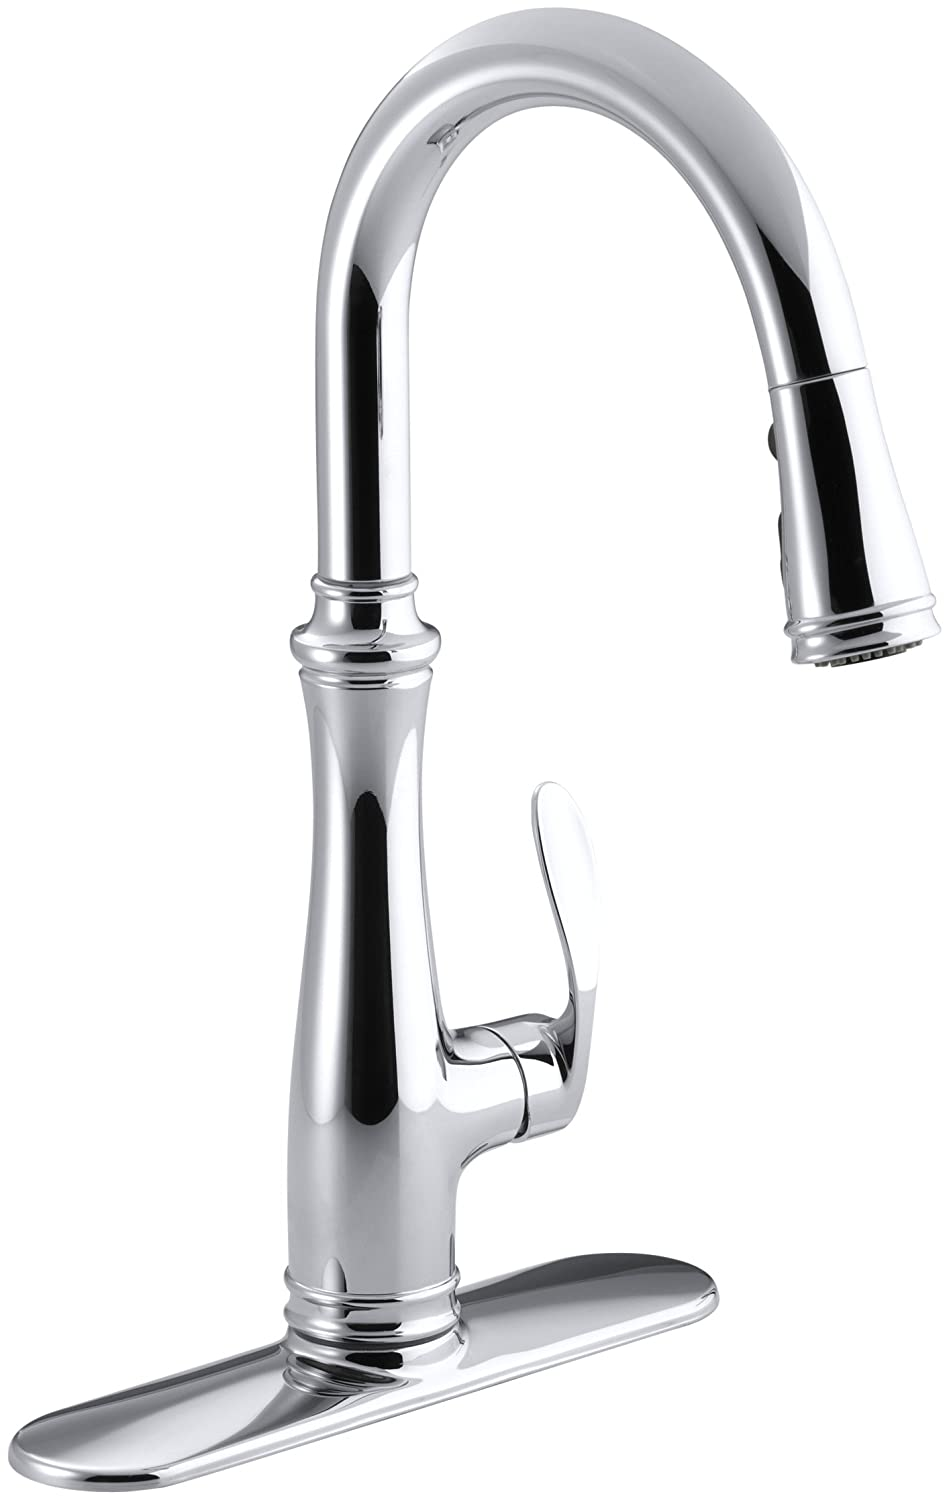 Wonderful Kohler K 560 CP Bellera Pull Down Kitchen Faucet, Chrome   Touch On Kitchen  Sink Faucets   Amazon.com